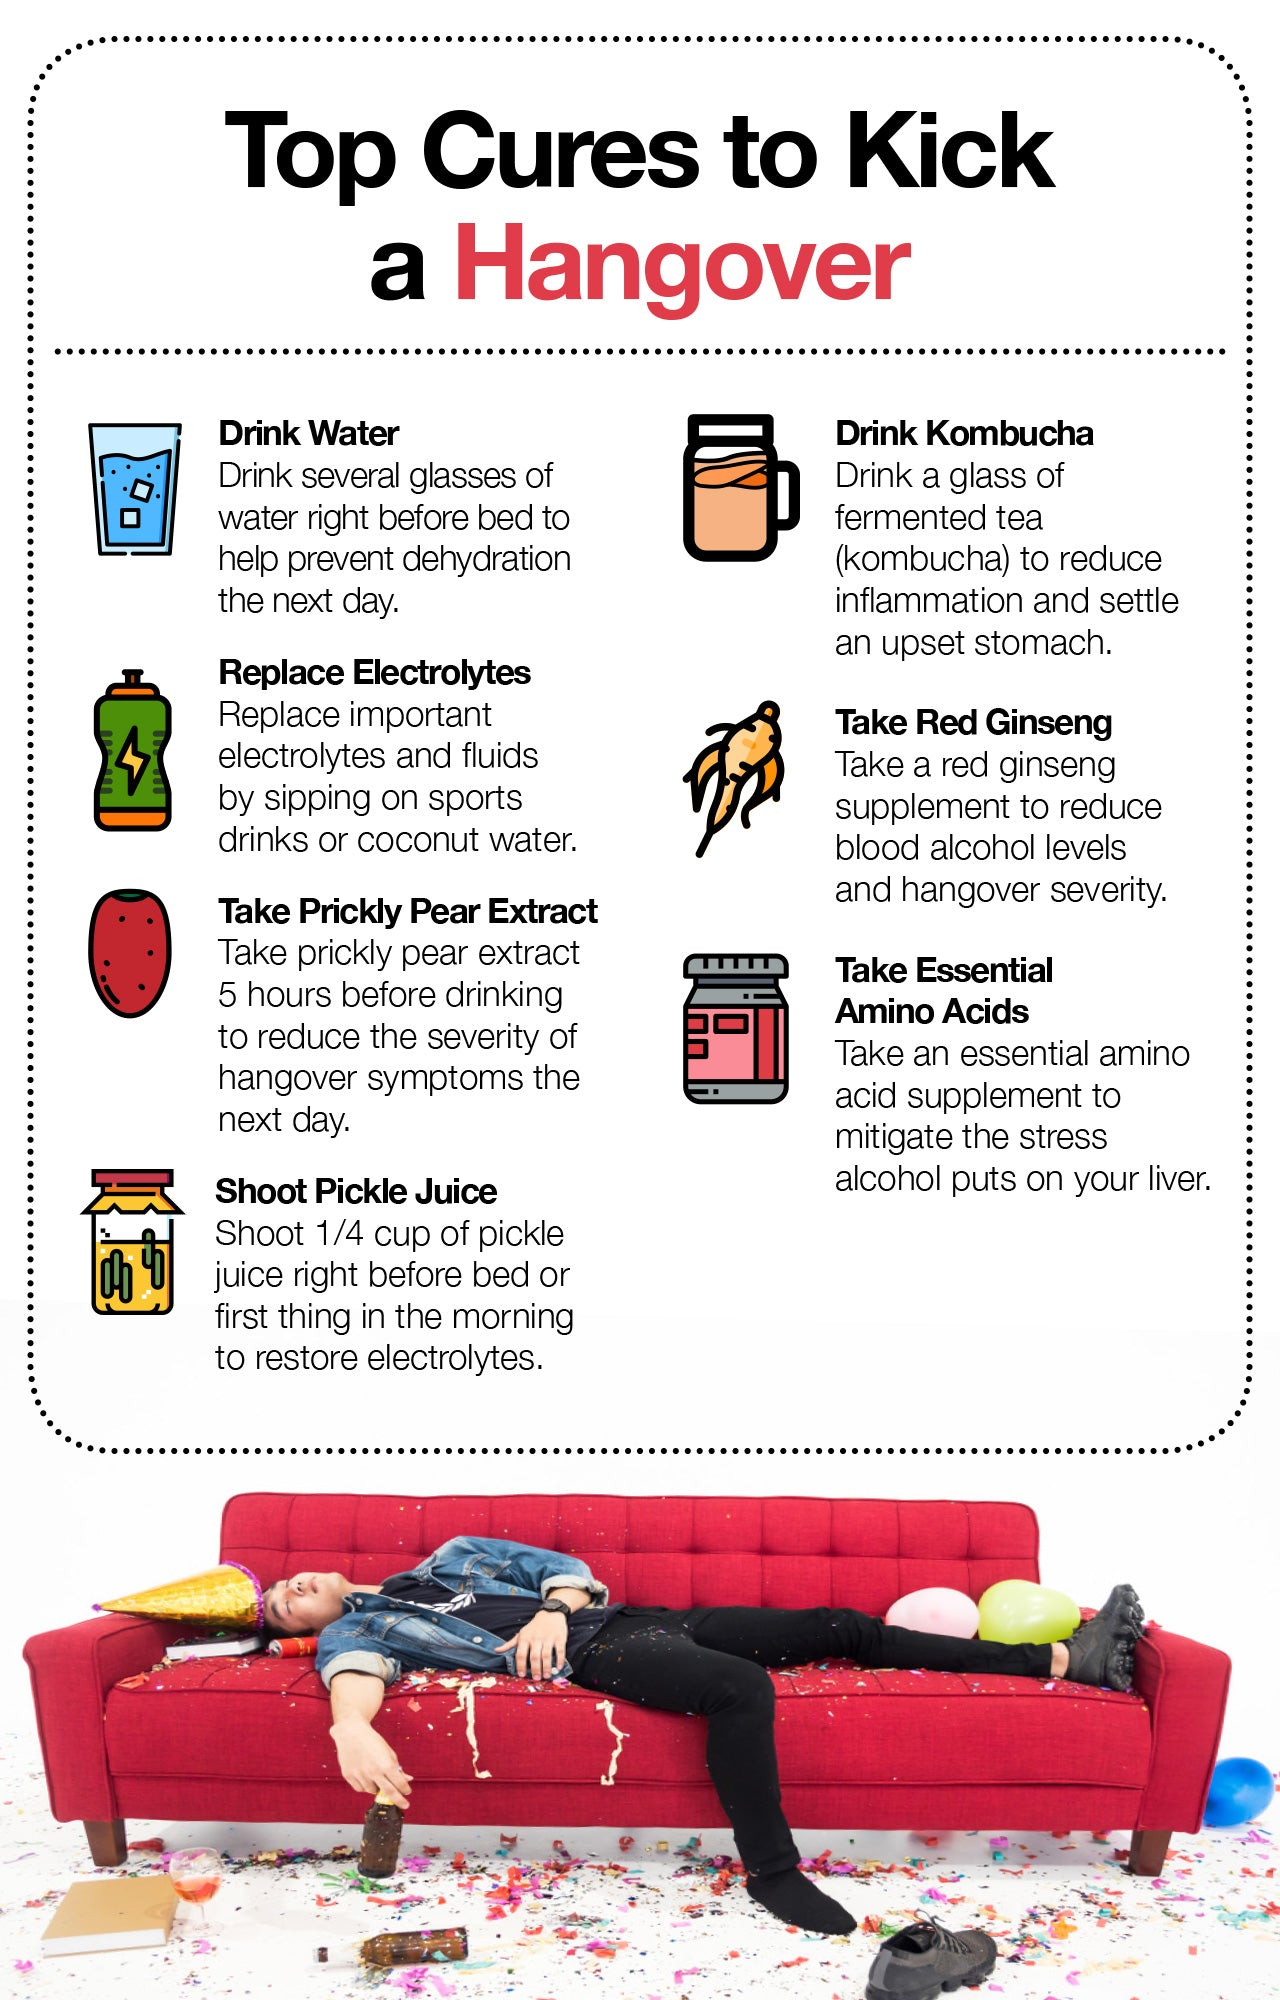 Cures to kick a hangover